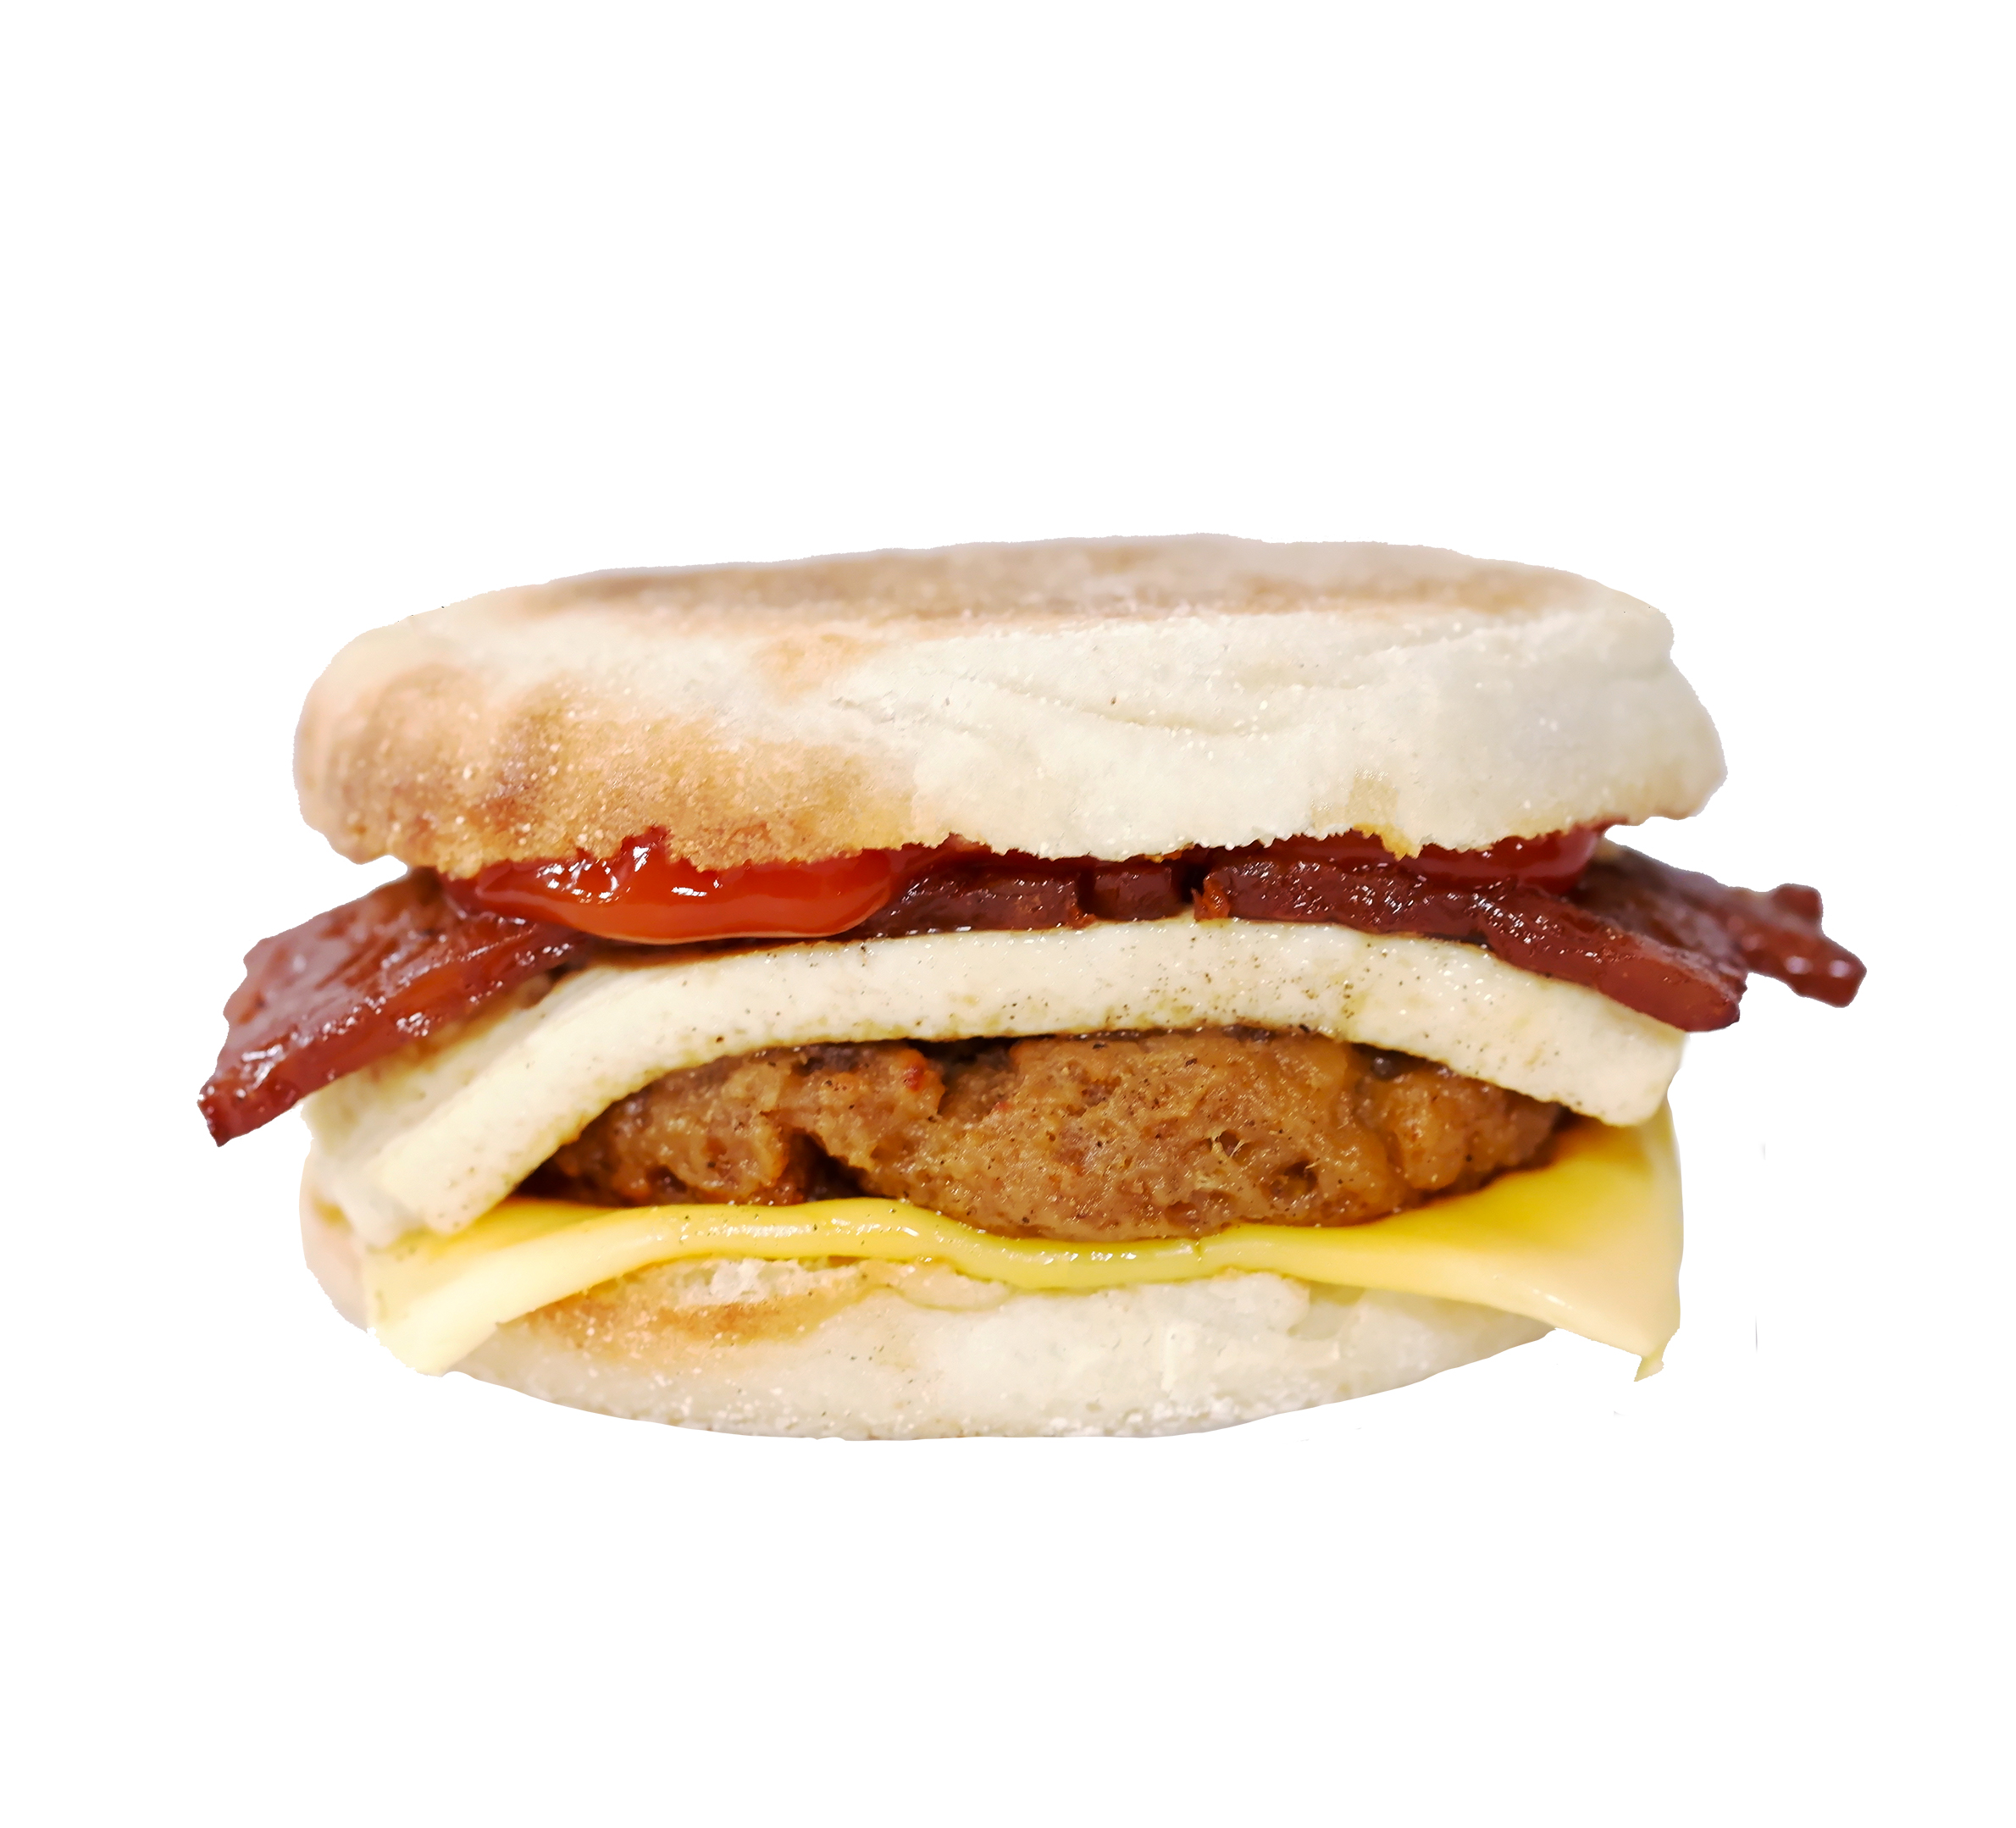 faconator - This hearty sandwich features our house-made breakfast 'sausage', bacUn, and a hand cut tofu 'egg'. Served on your choice of plain or whole wheat English muffin with a slice of dairy-free American style cheddar cheese and a drizzle of ketchup on top.